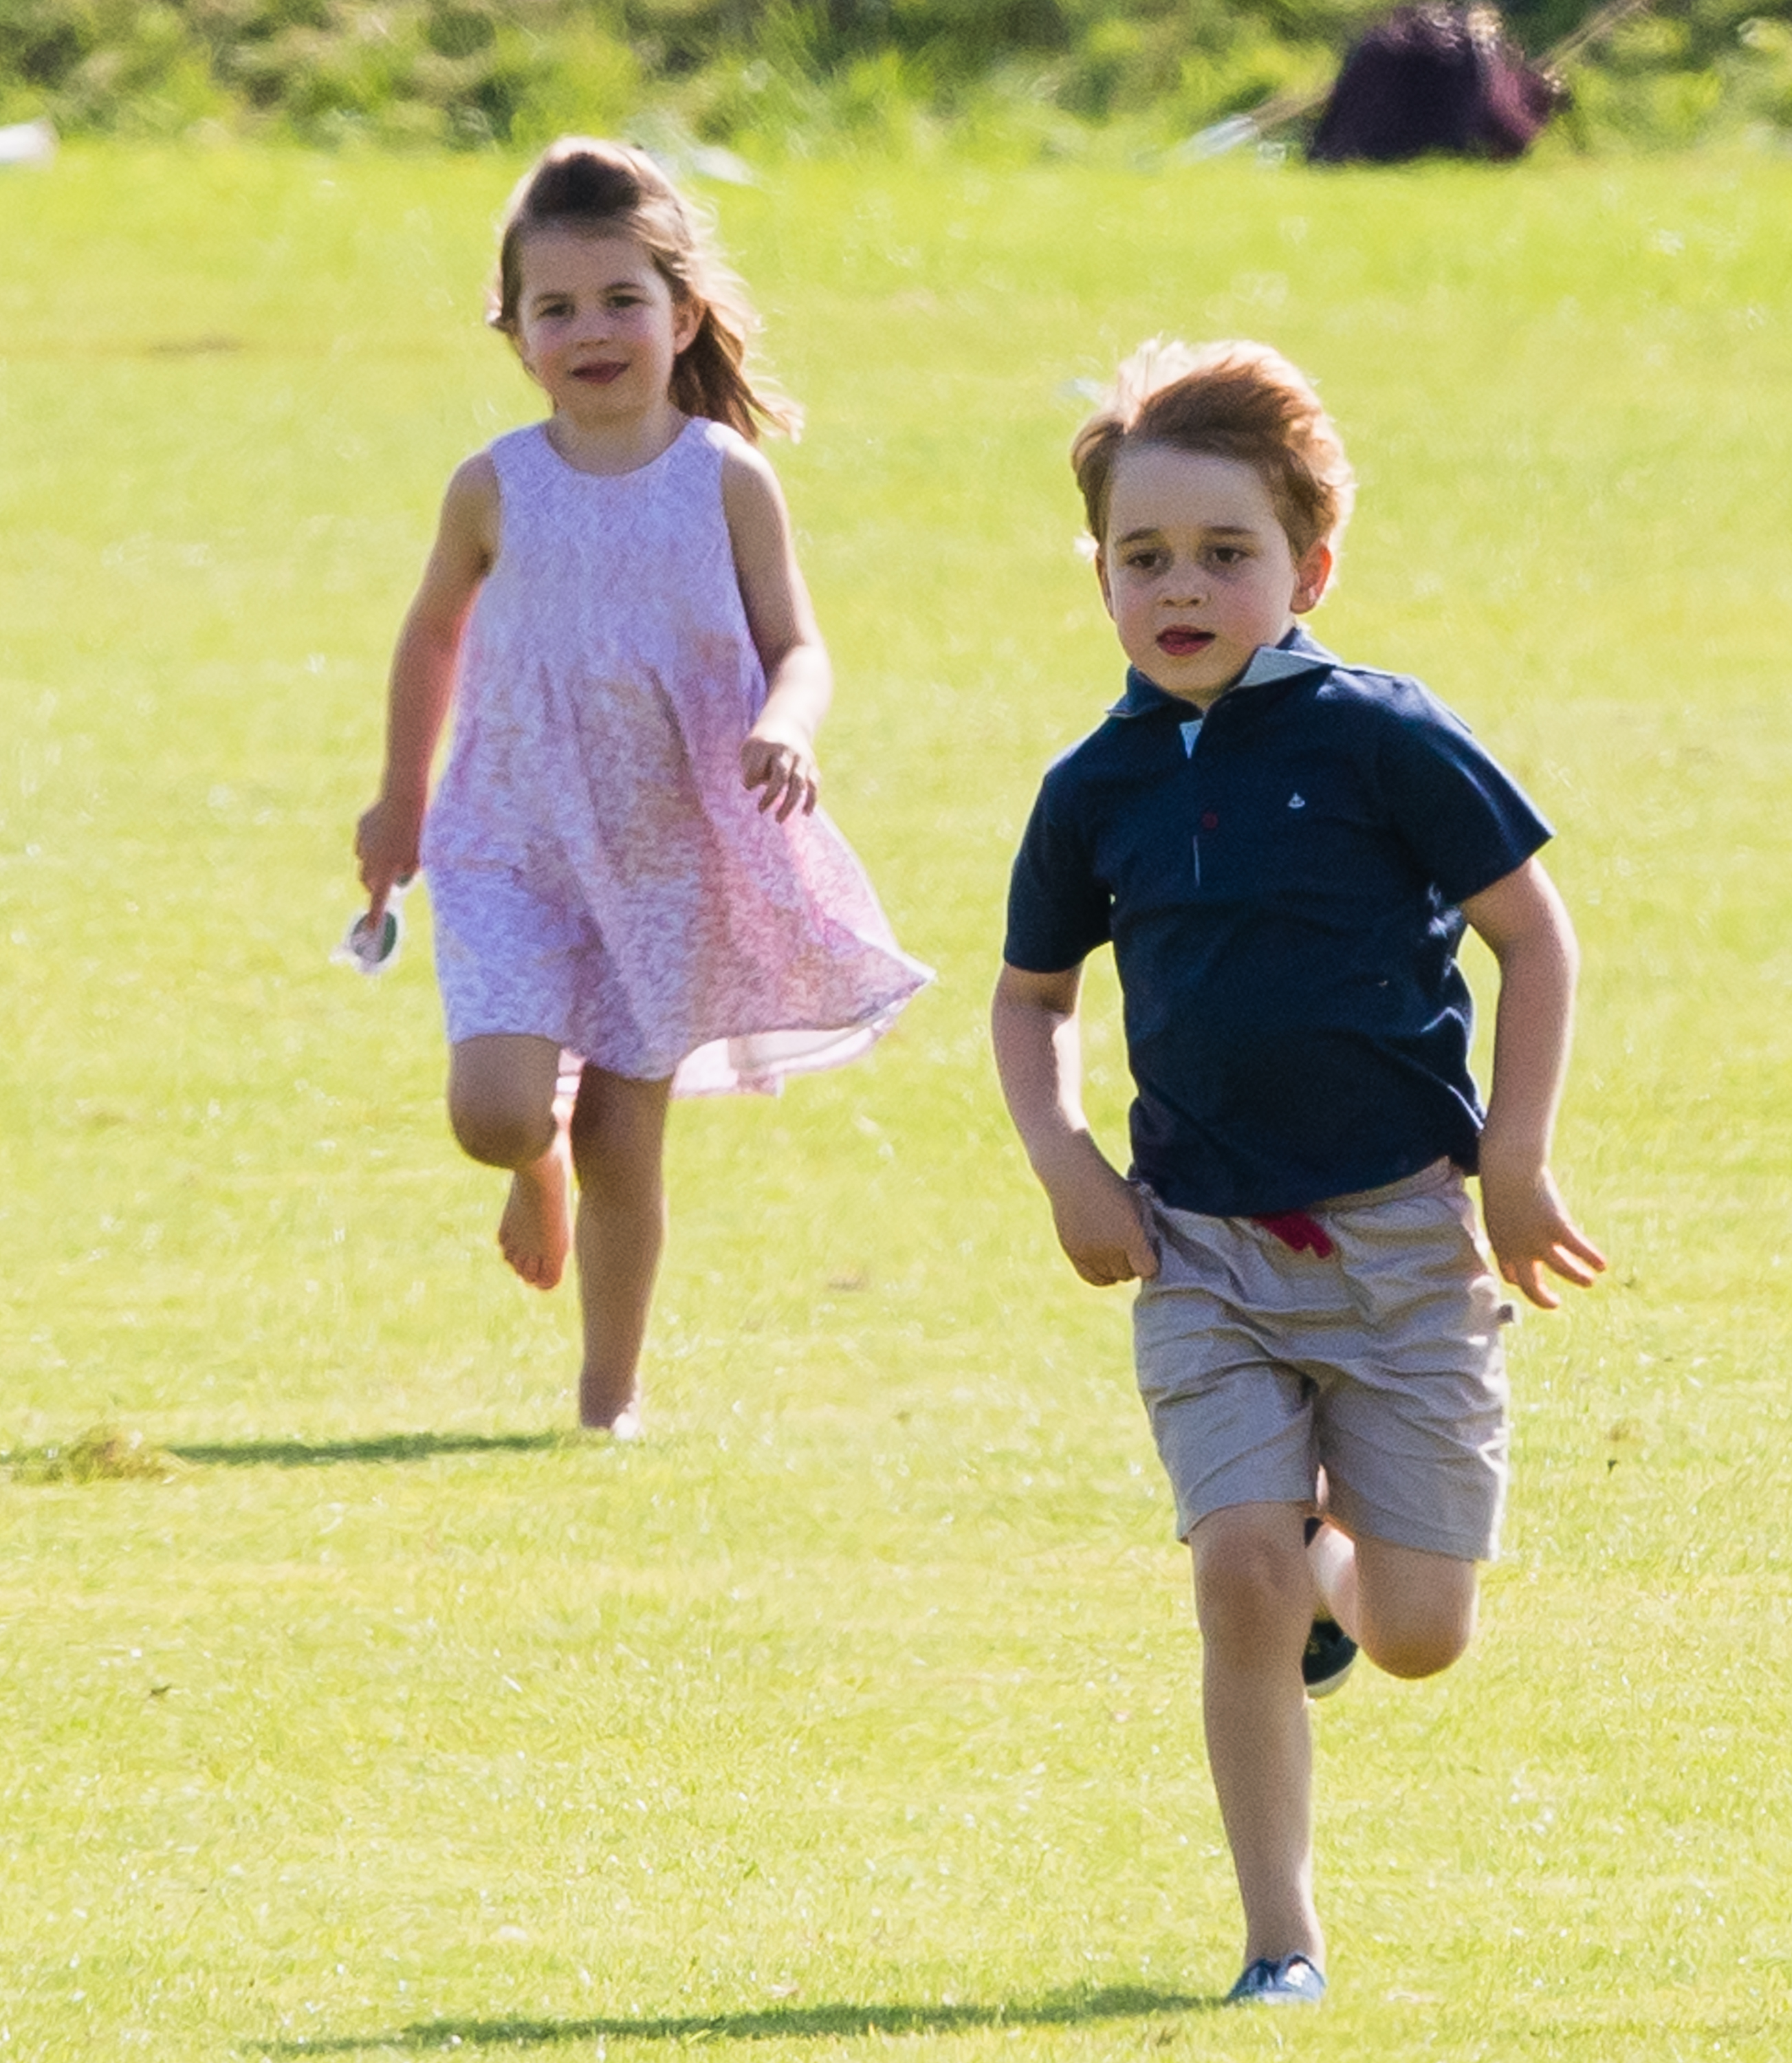 Prince George Princess Charlotte Running Getty Images